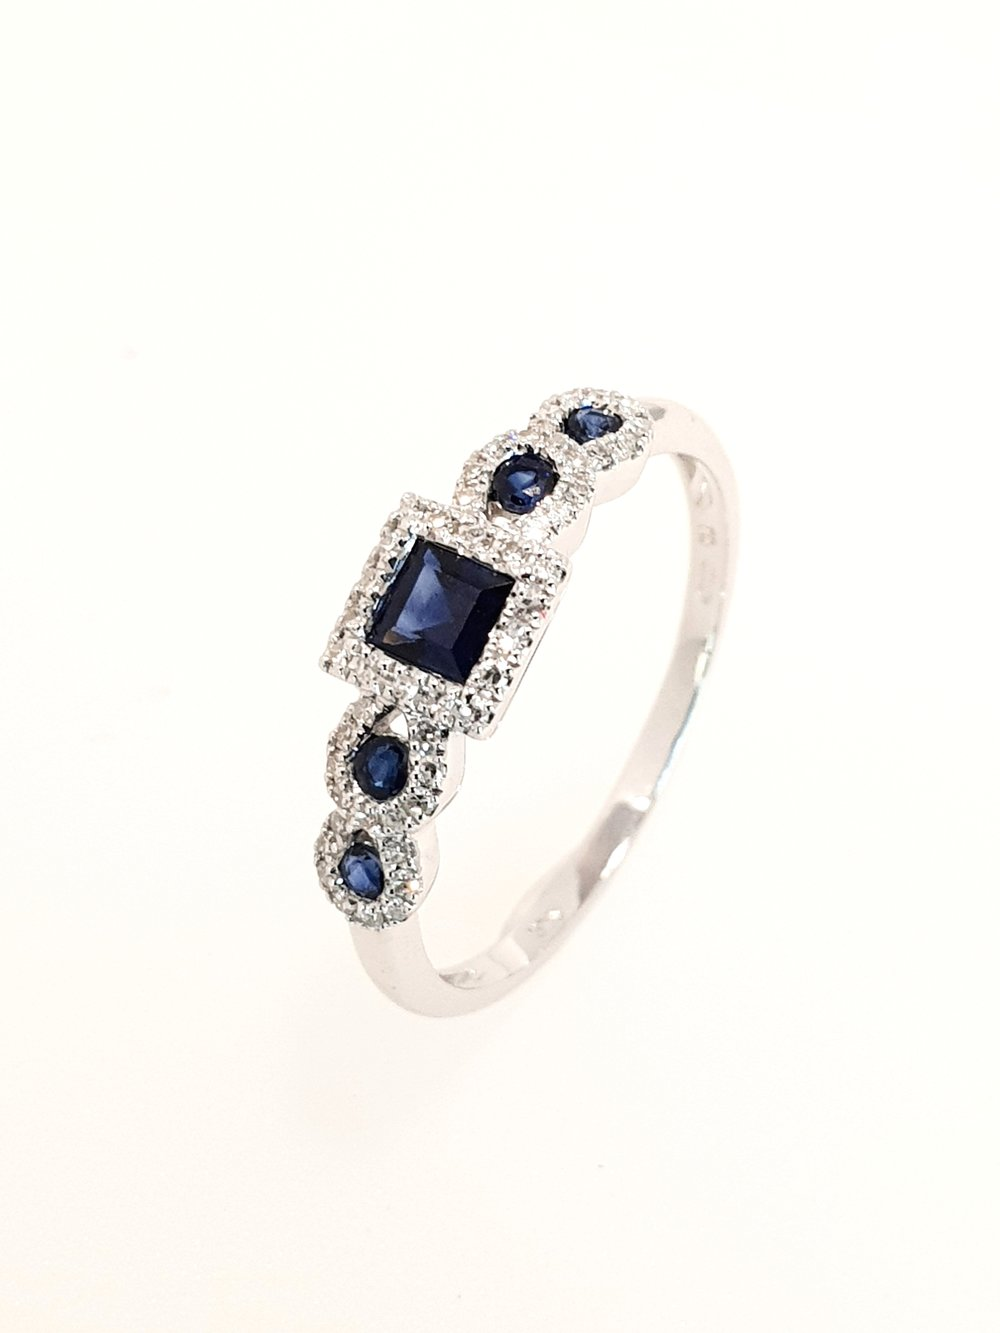 9ct White Gold Sapphire & Diamond Ring  Stock Code: G1966  £625